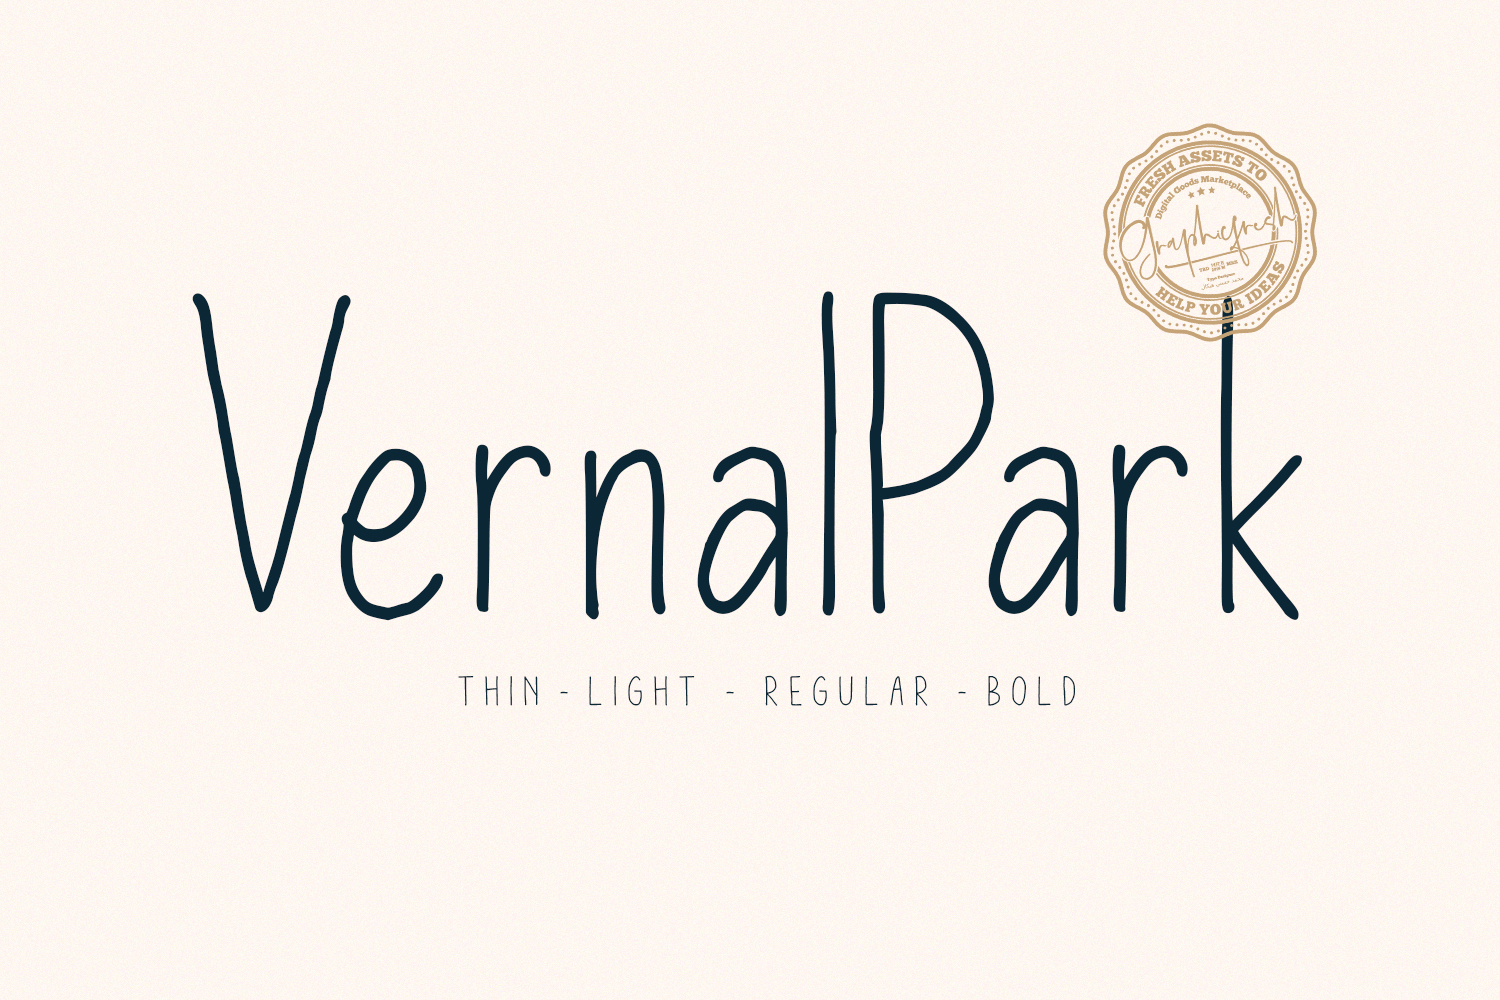 Vernal Park example image 1